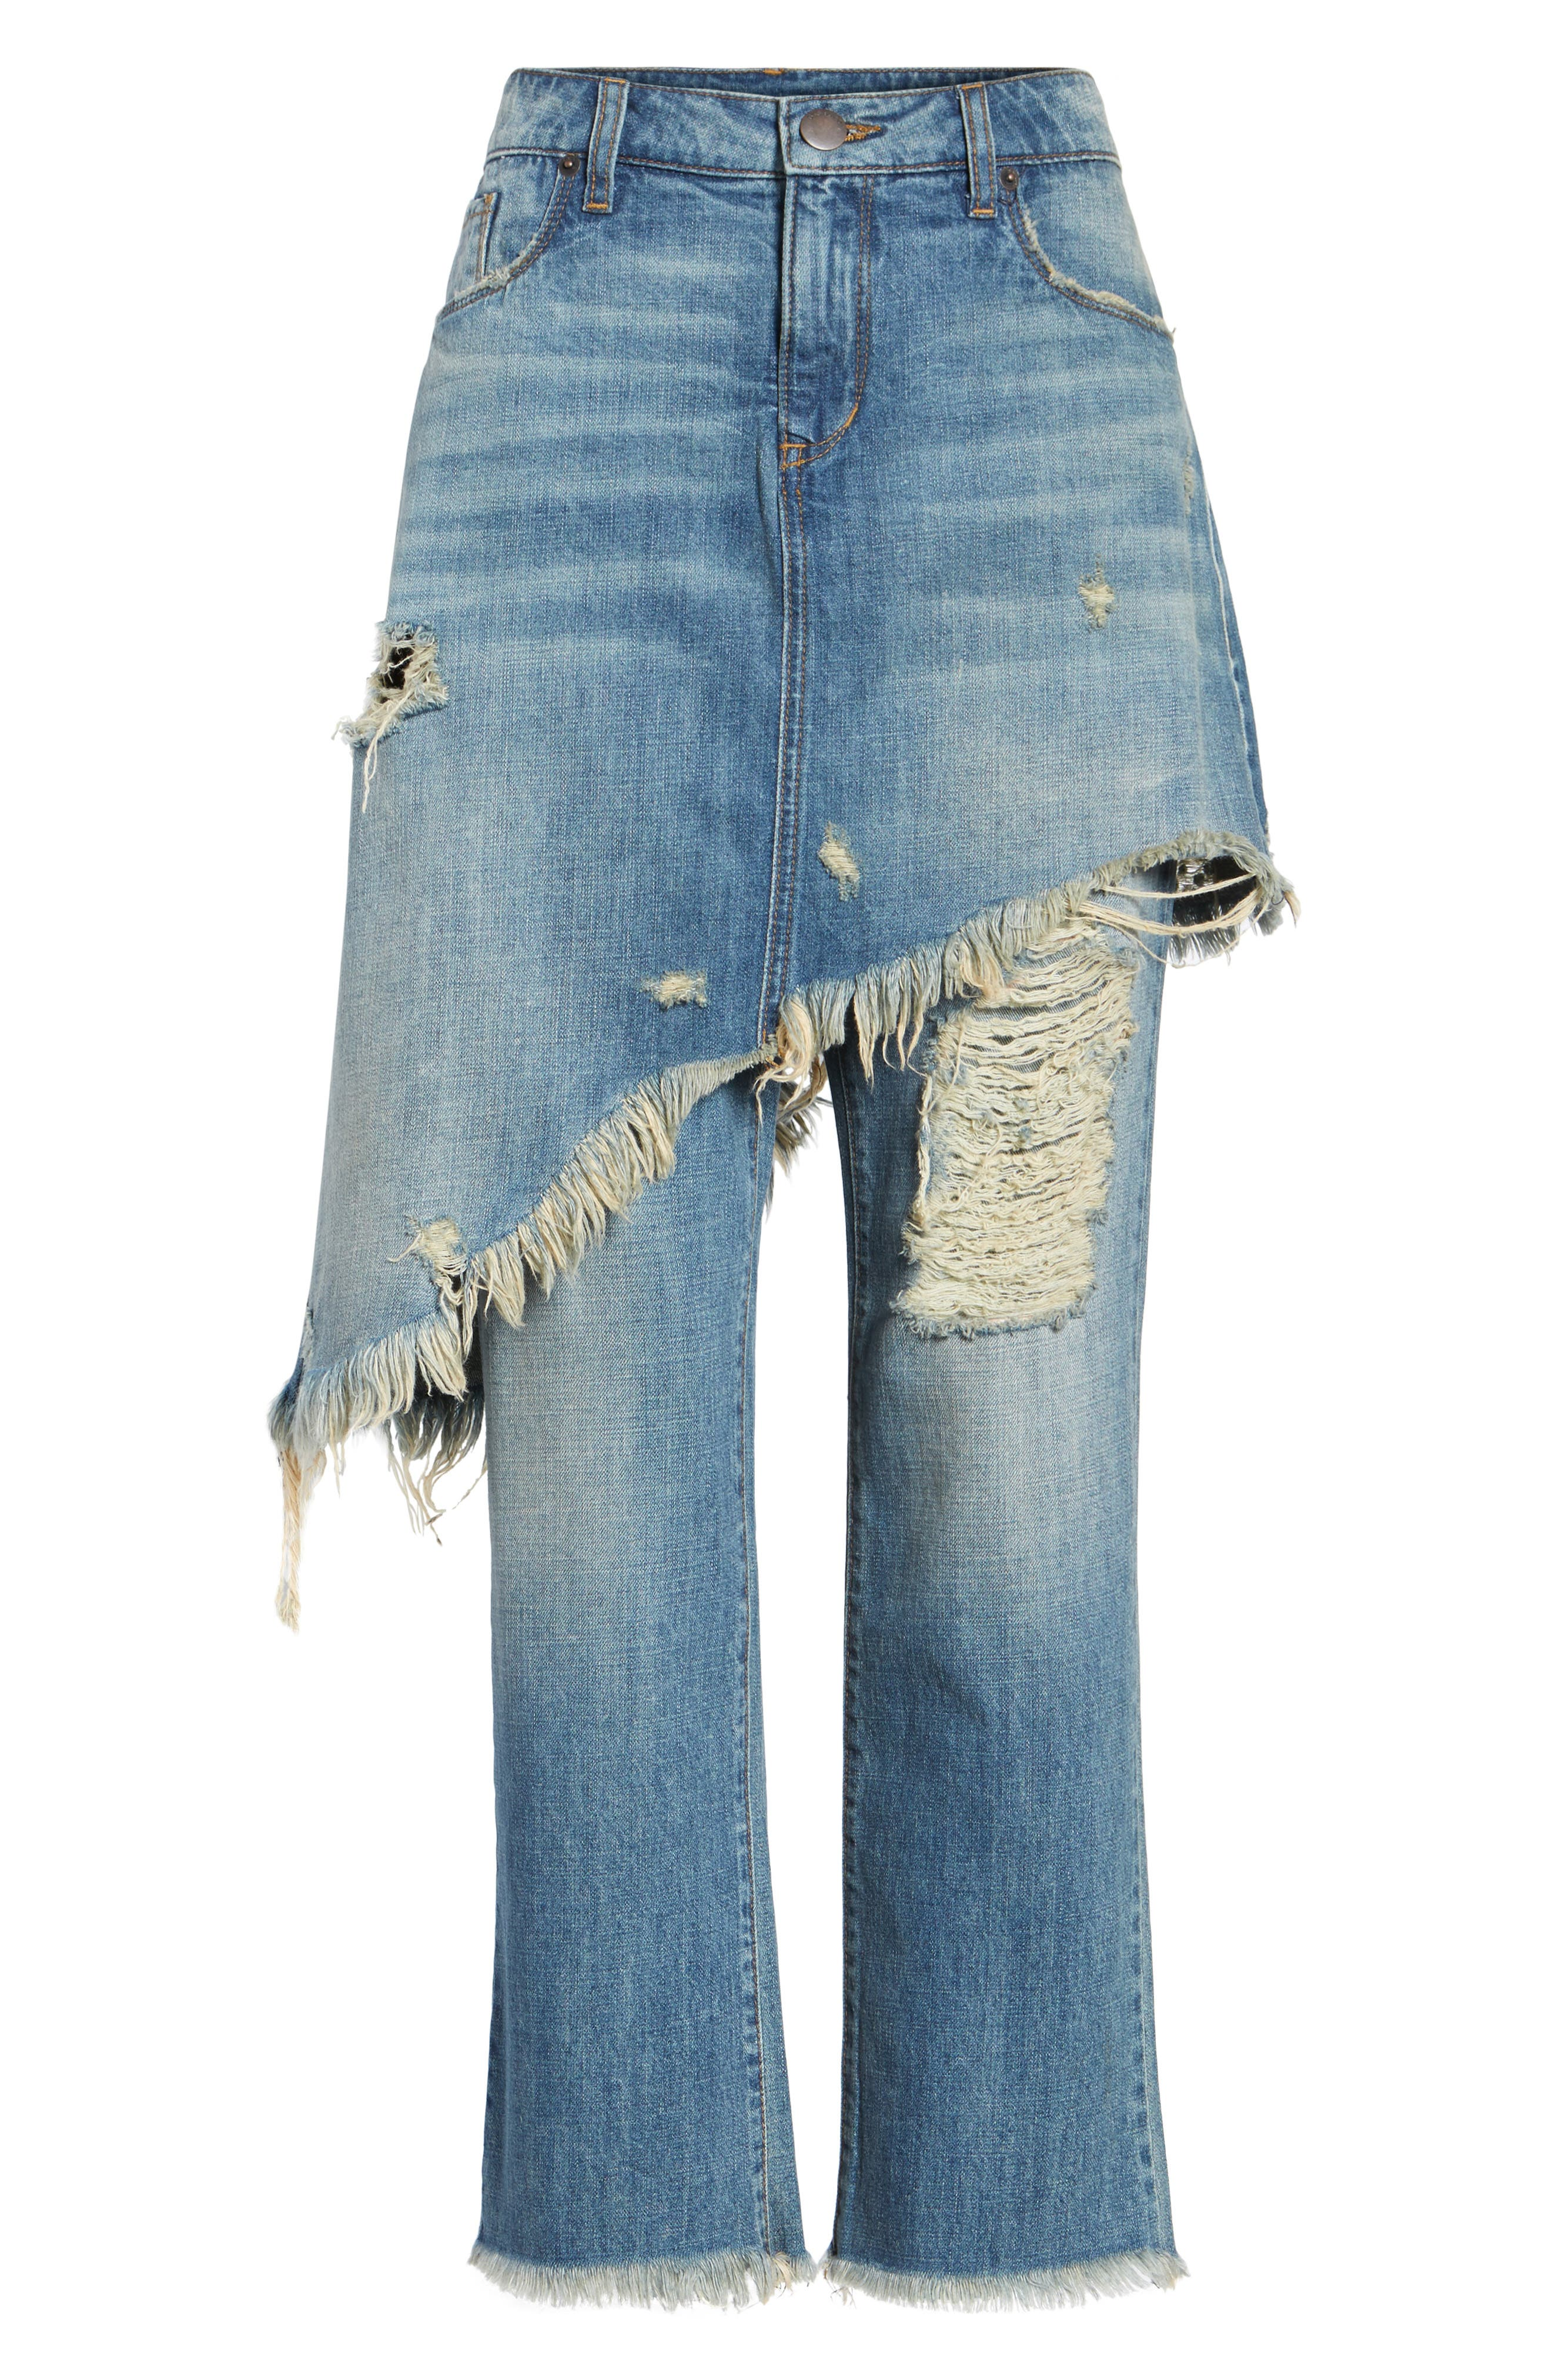 Layered Ripped Skirt Jeans,                             Alternate thumbnail 6, color,                             400